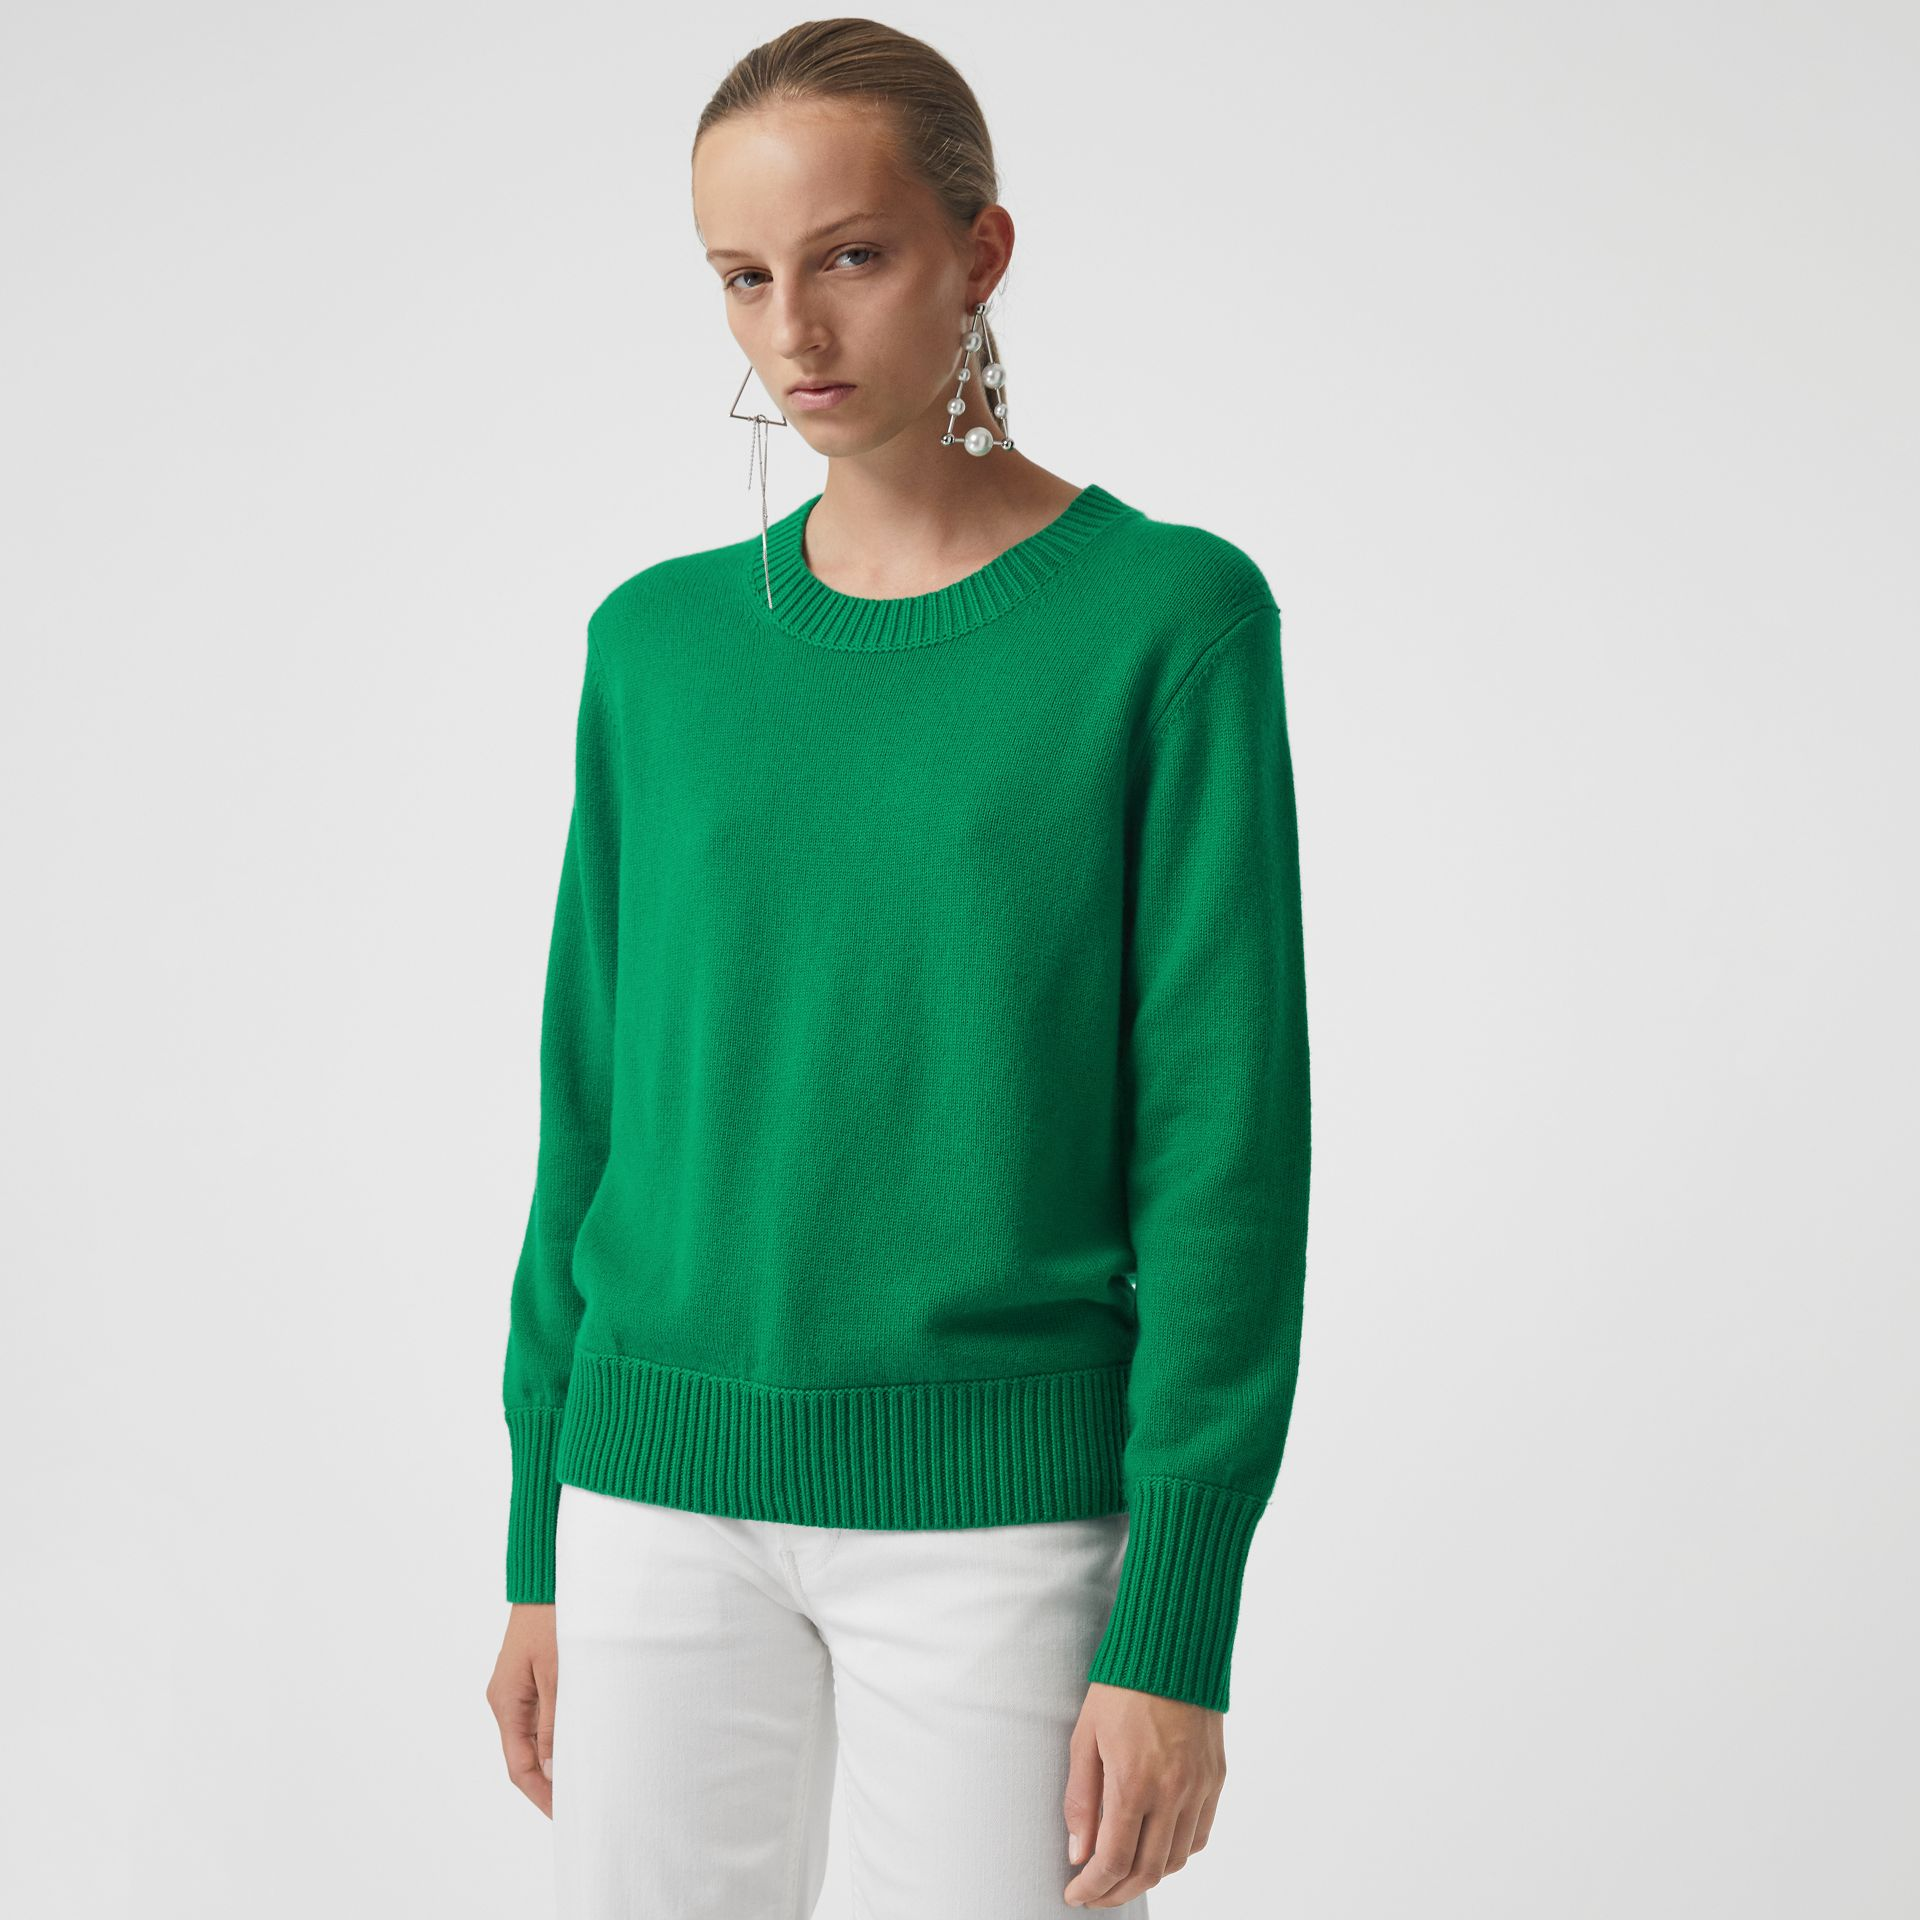 Archive Logo Appliqué Cashmere Sweater in Vibrant Green - Women | Burberry Canada - gallery image 0